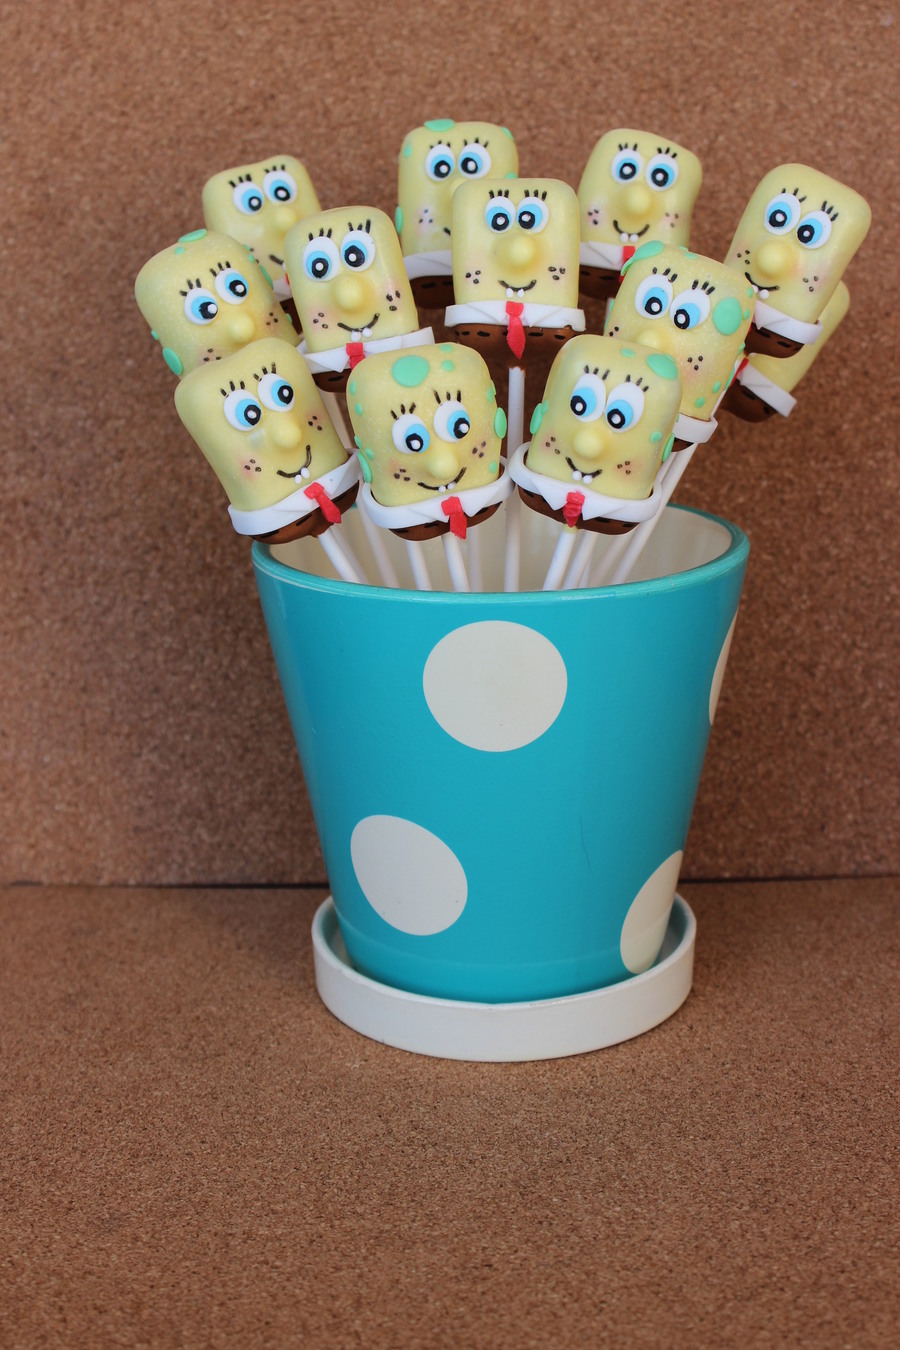 Sponge Bob Cake And Cake Pops For A Sweet Boy on Cake Central